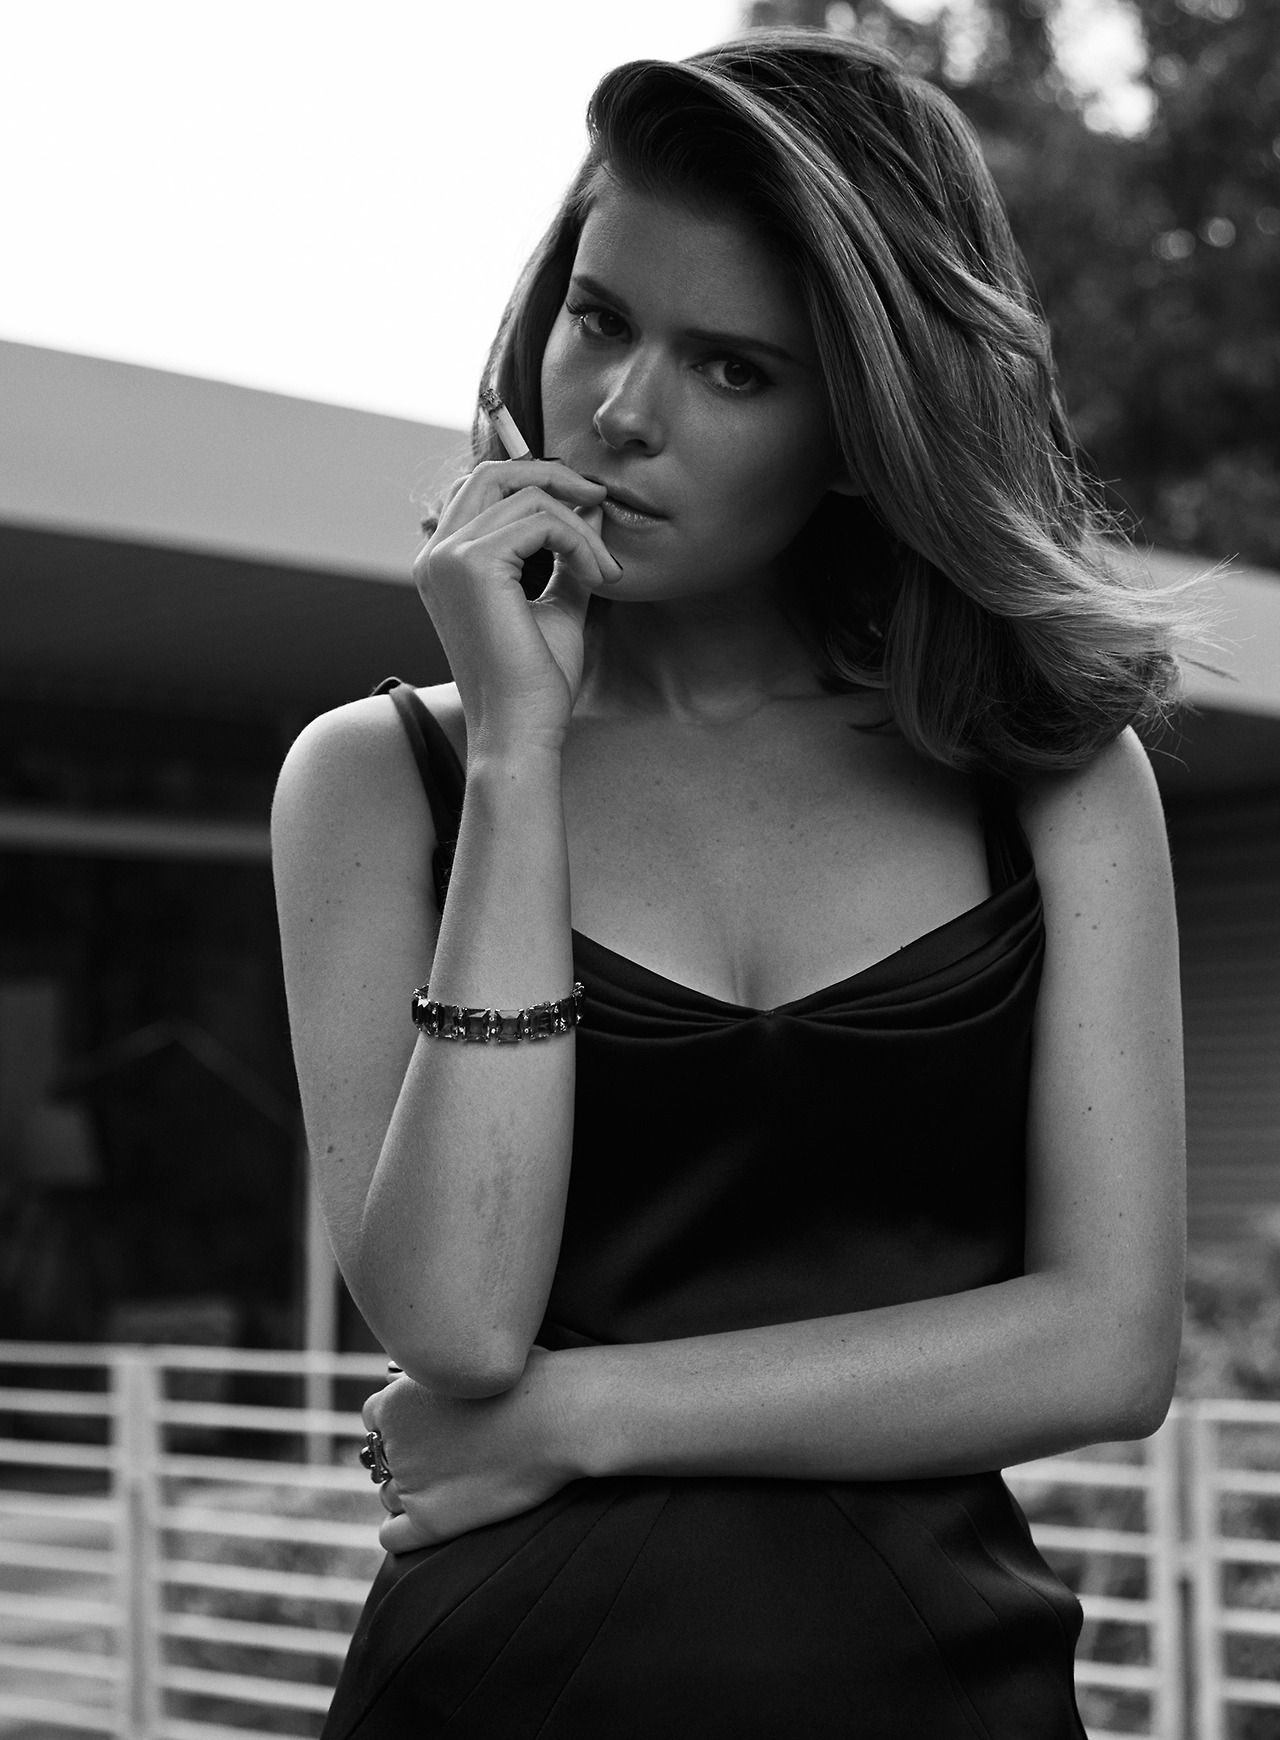 Kate Mara Smoking Absolutely Disappointing She Might Engage In